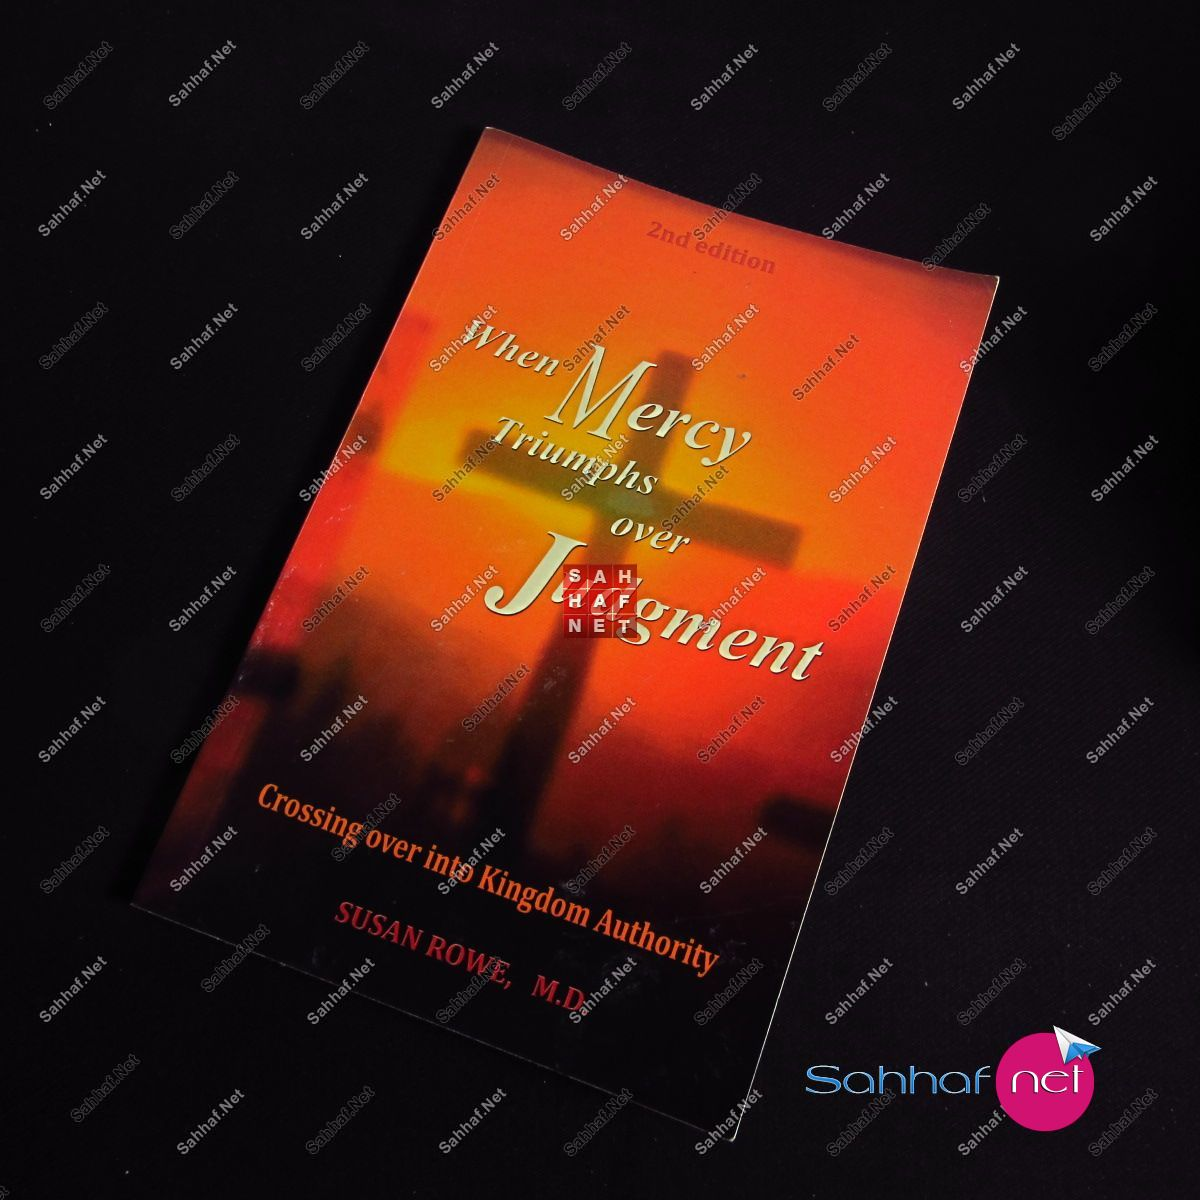 WHEN MERCY TRIUMPHS OVER JUDGMENT – Susan Rowe Kitap